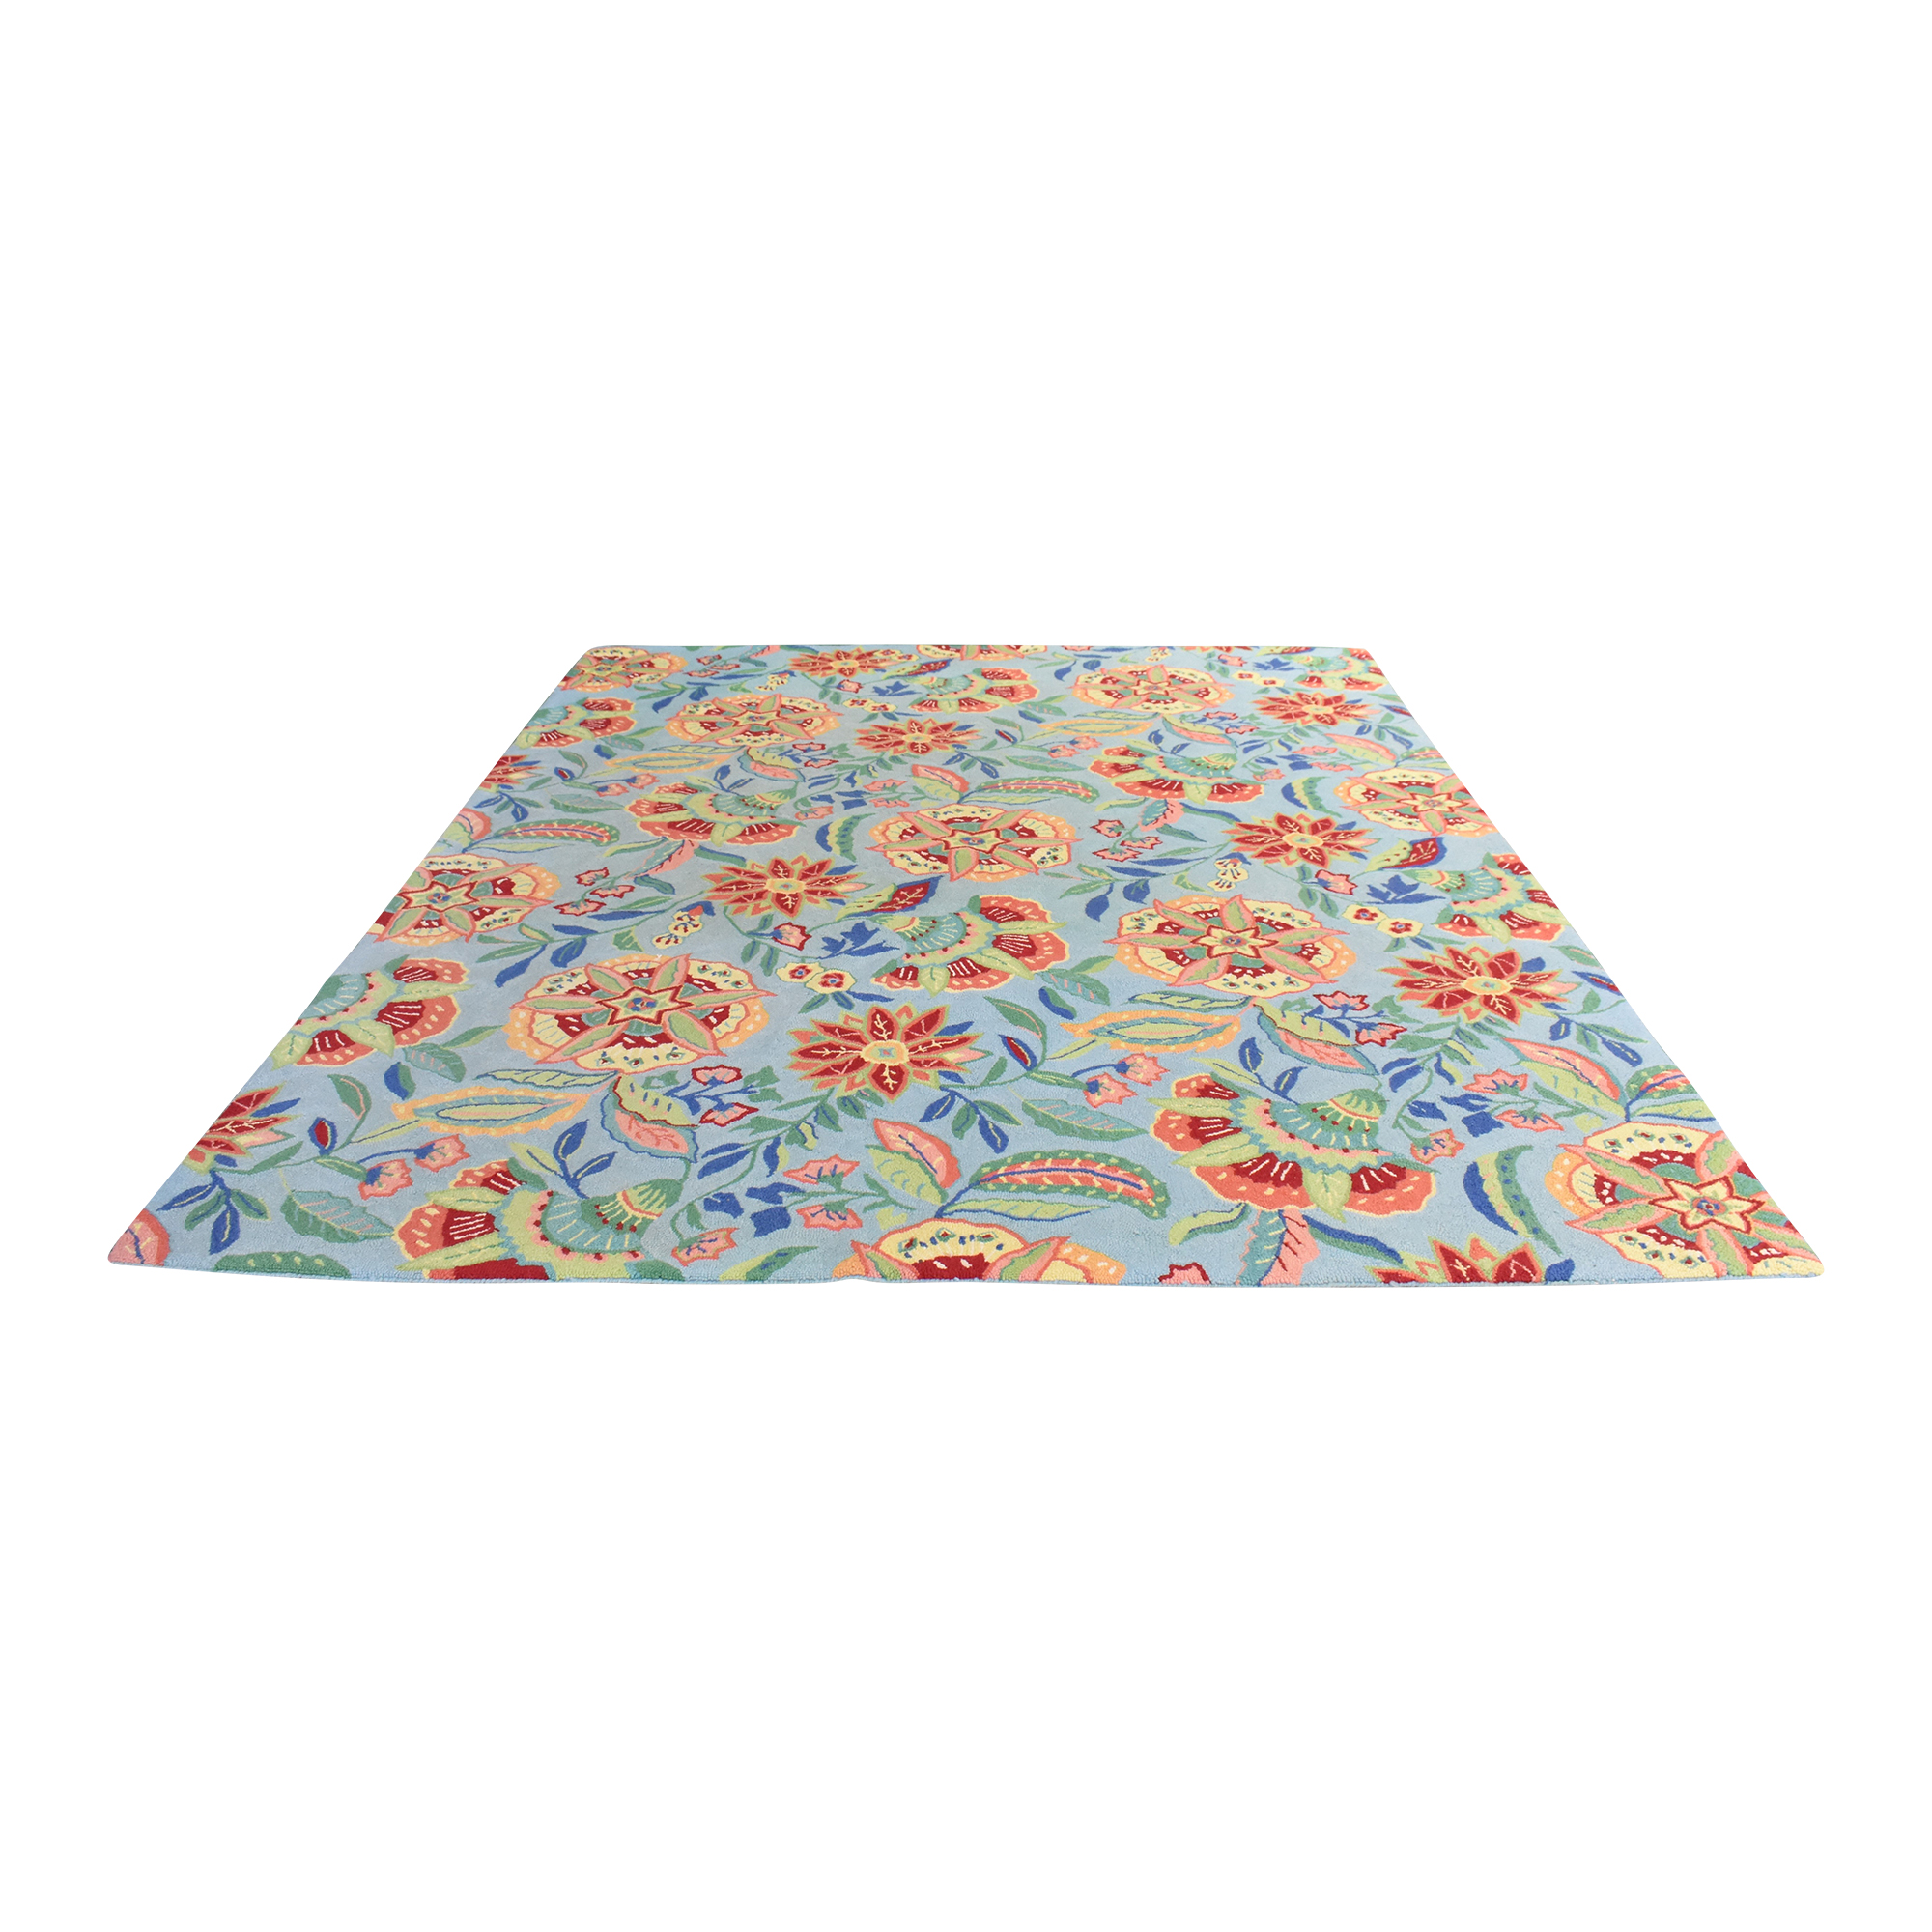 Company C Company C Floral Pattern Area Rug second hand